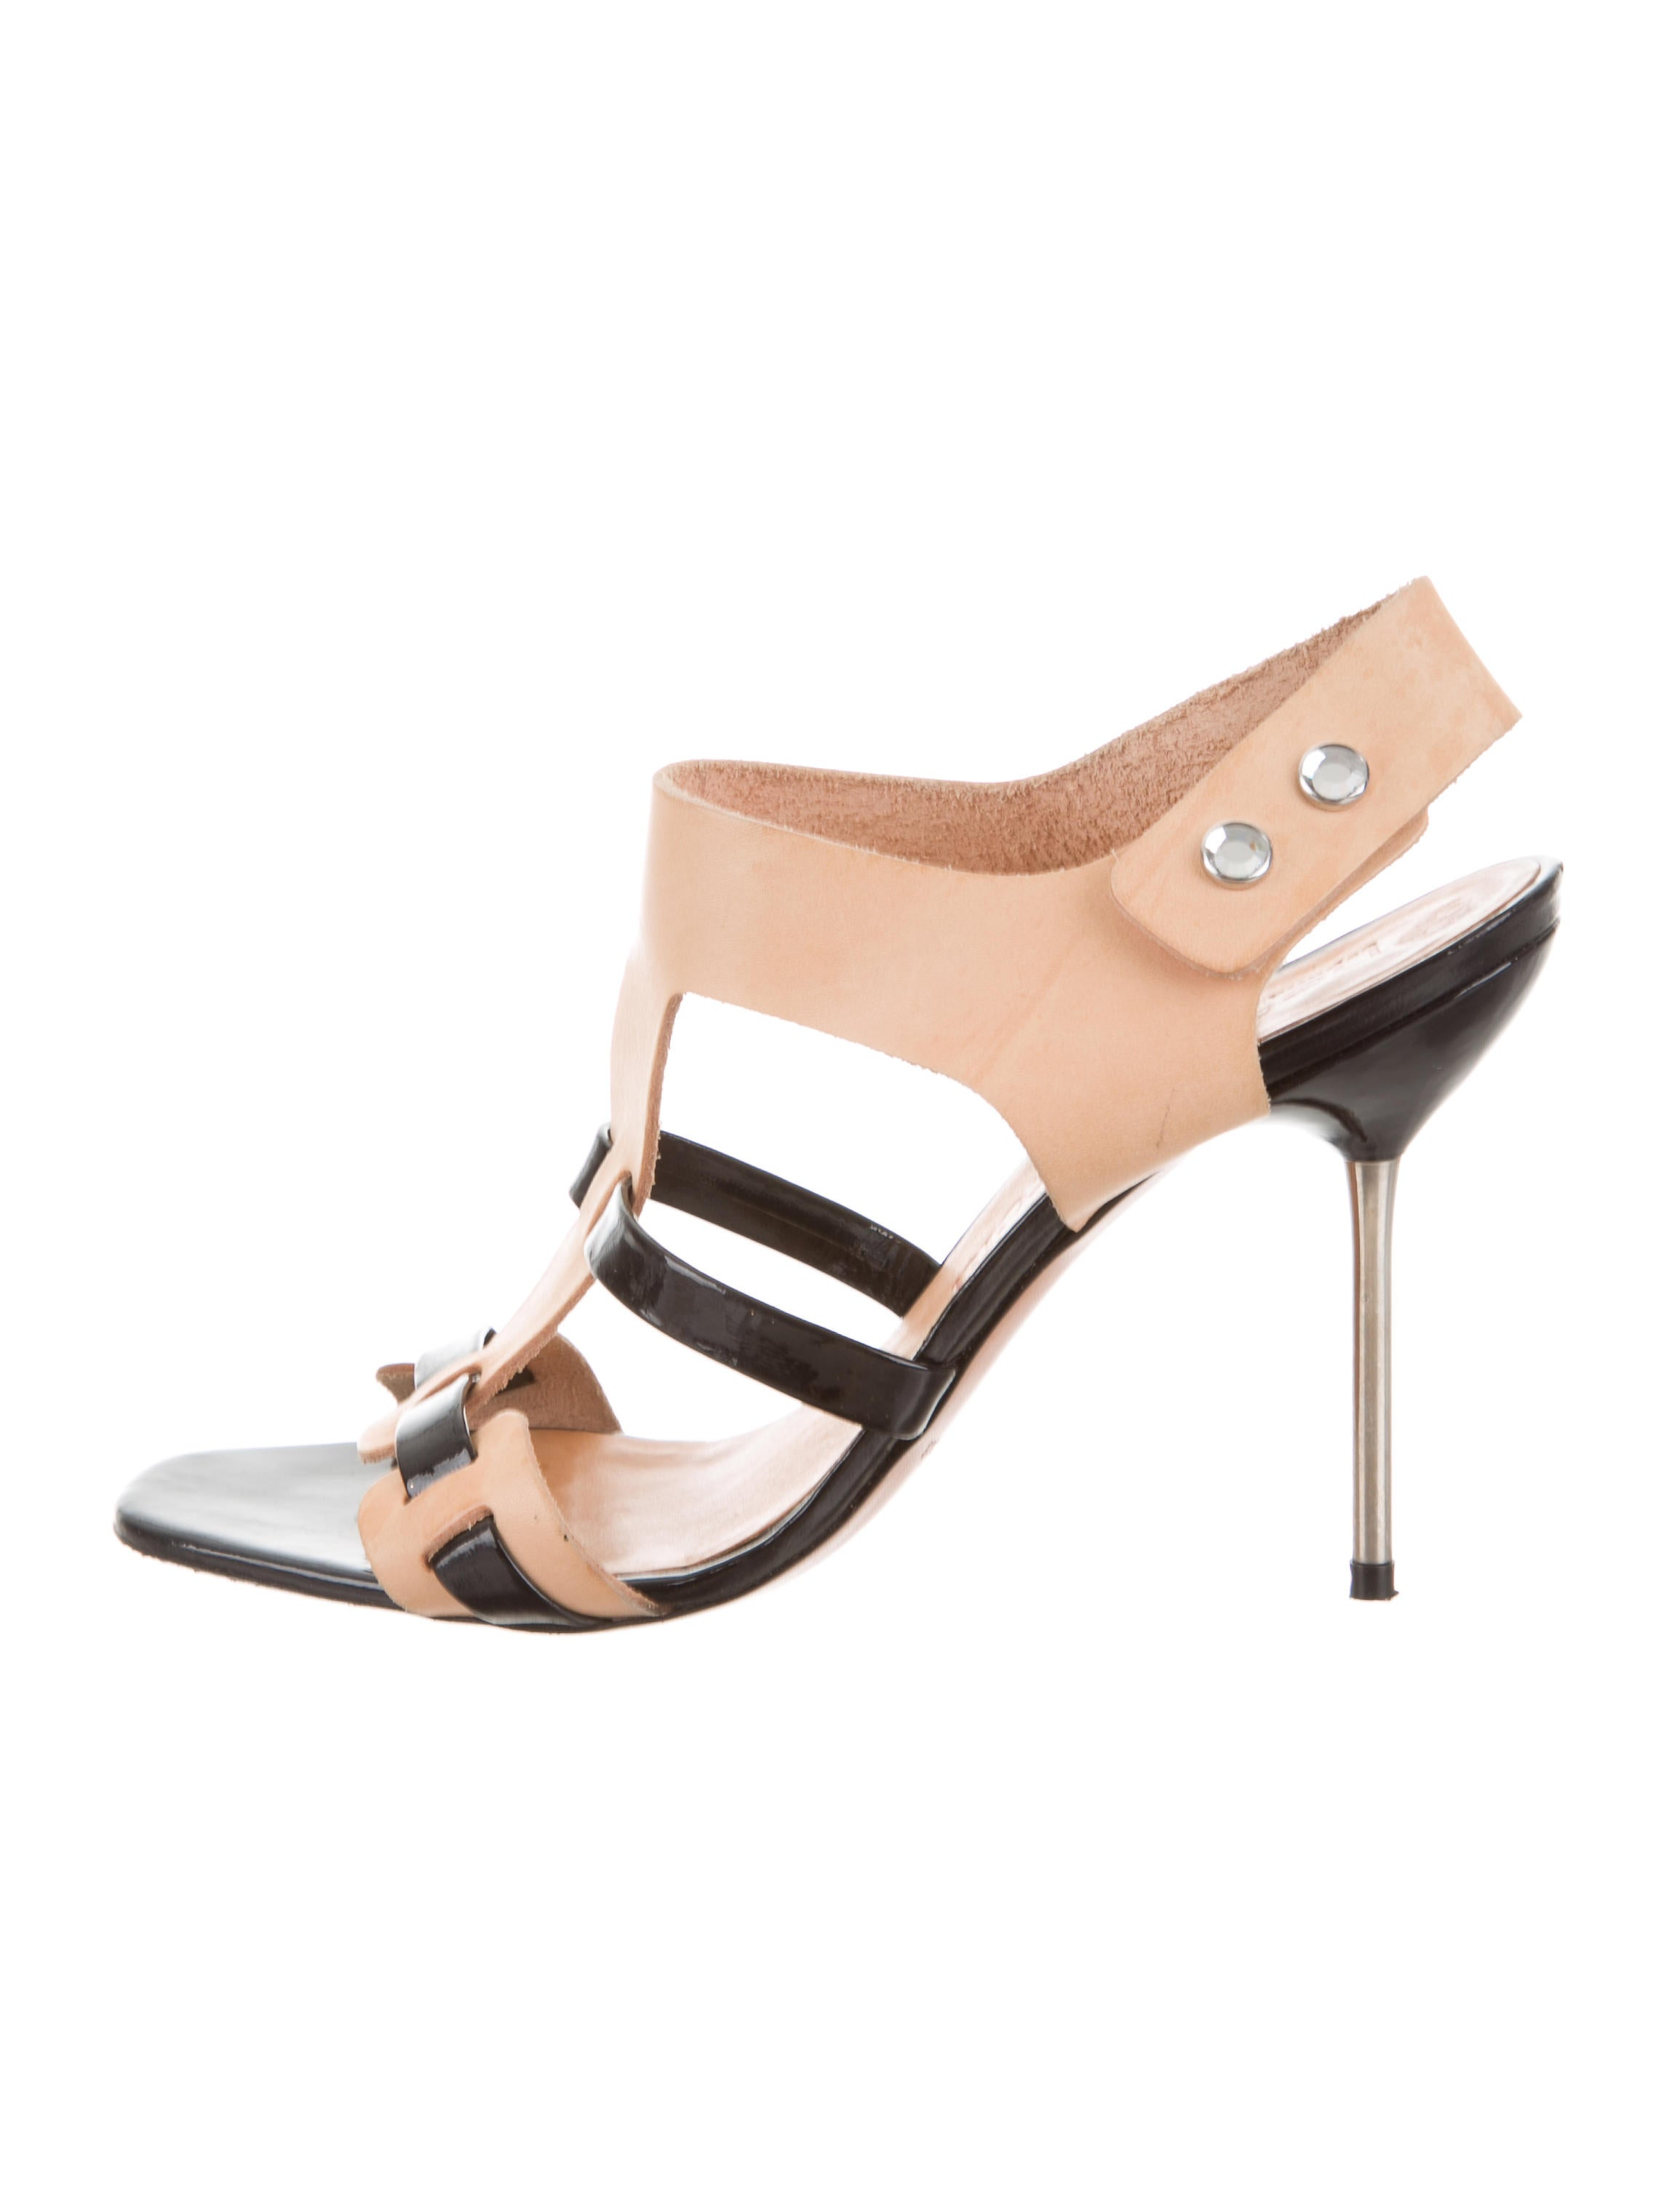 get authentic sale online quality outlet store Pedro Garcia Multistrap Leather Sandals 100% authentic for sale xIJrga